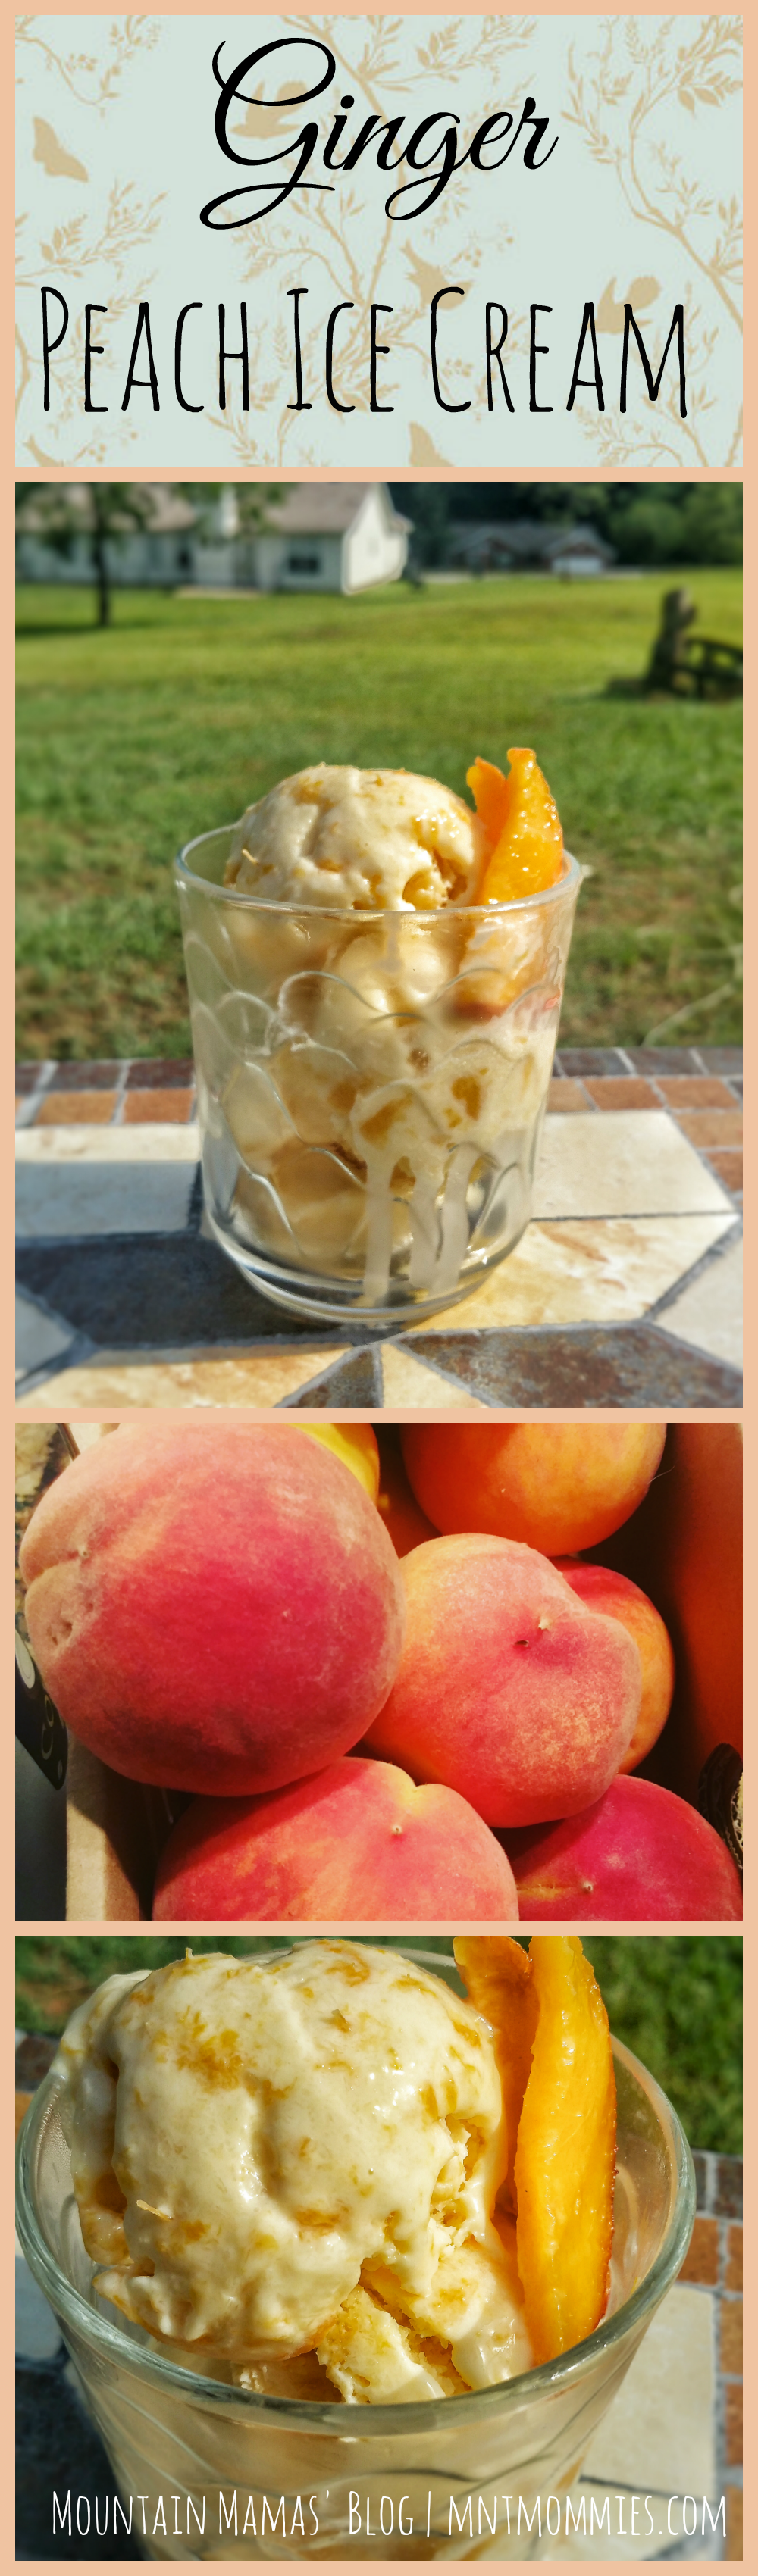 Summer Ginger Peach Ice Cream Recipe | Mountain Mamas' Blog | mntmommies.com